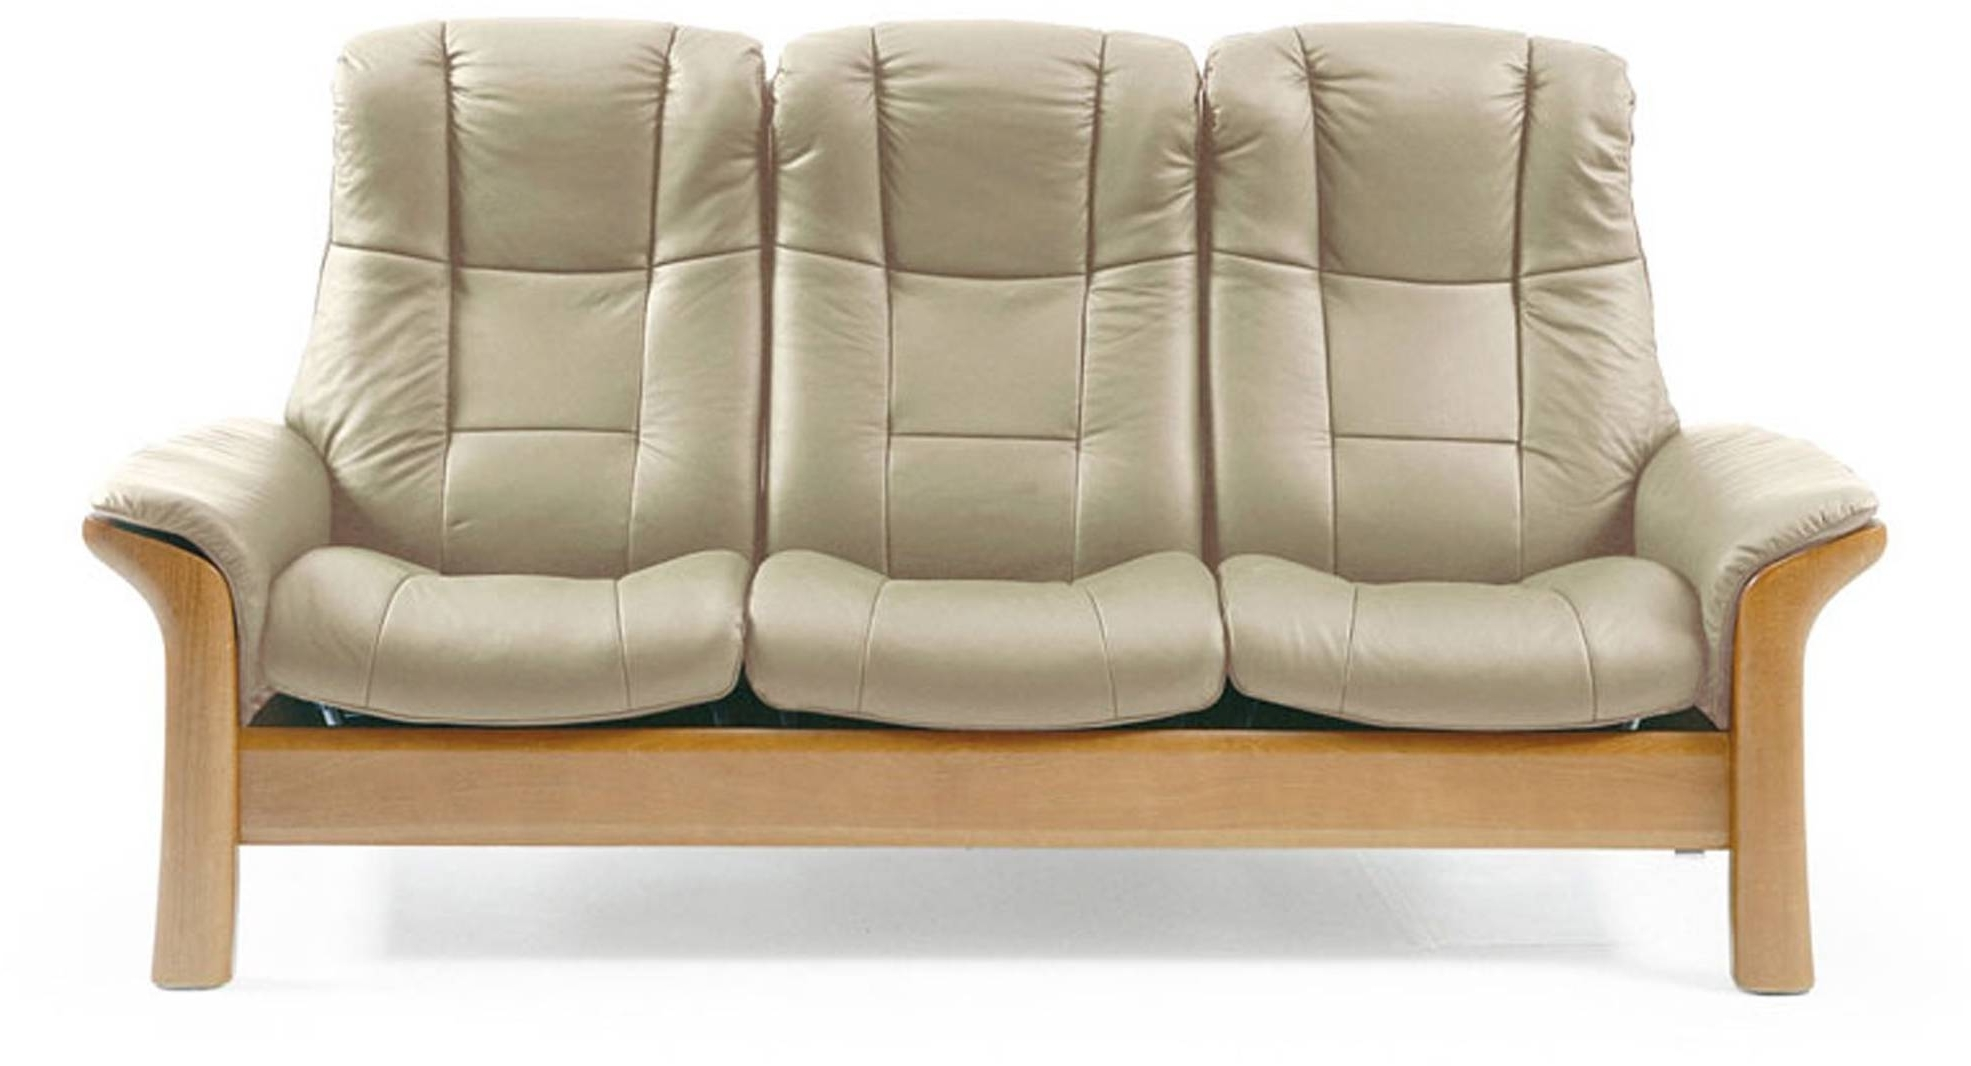 Stressless Windsor High Back 3 Seater Sofa – 3 Seater Sofas Intended For Well Liked Windsor Sofas (View 12 of 15)